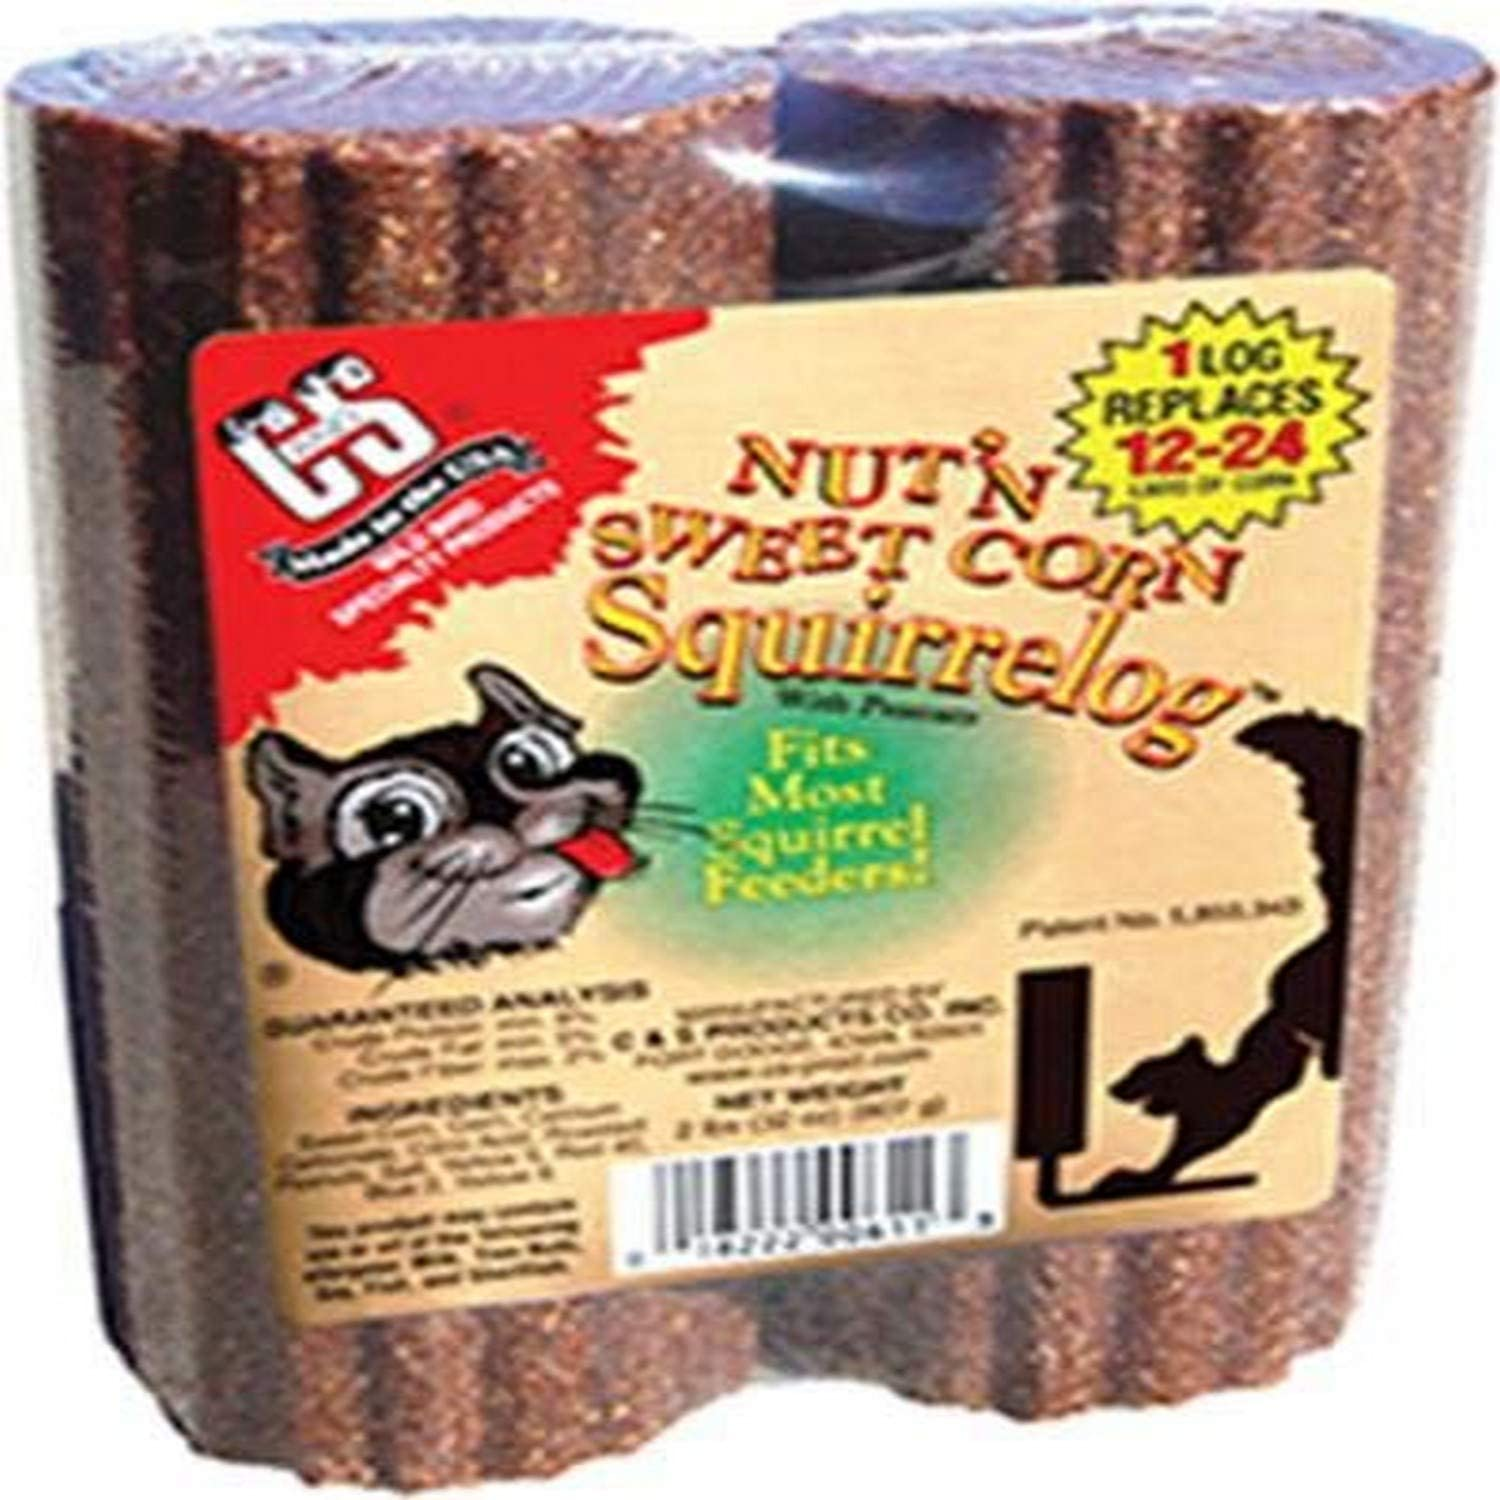 Cands Products CS611 32-Ounce Nut-FeetN Sweet Corn Squirrelog Refill